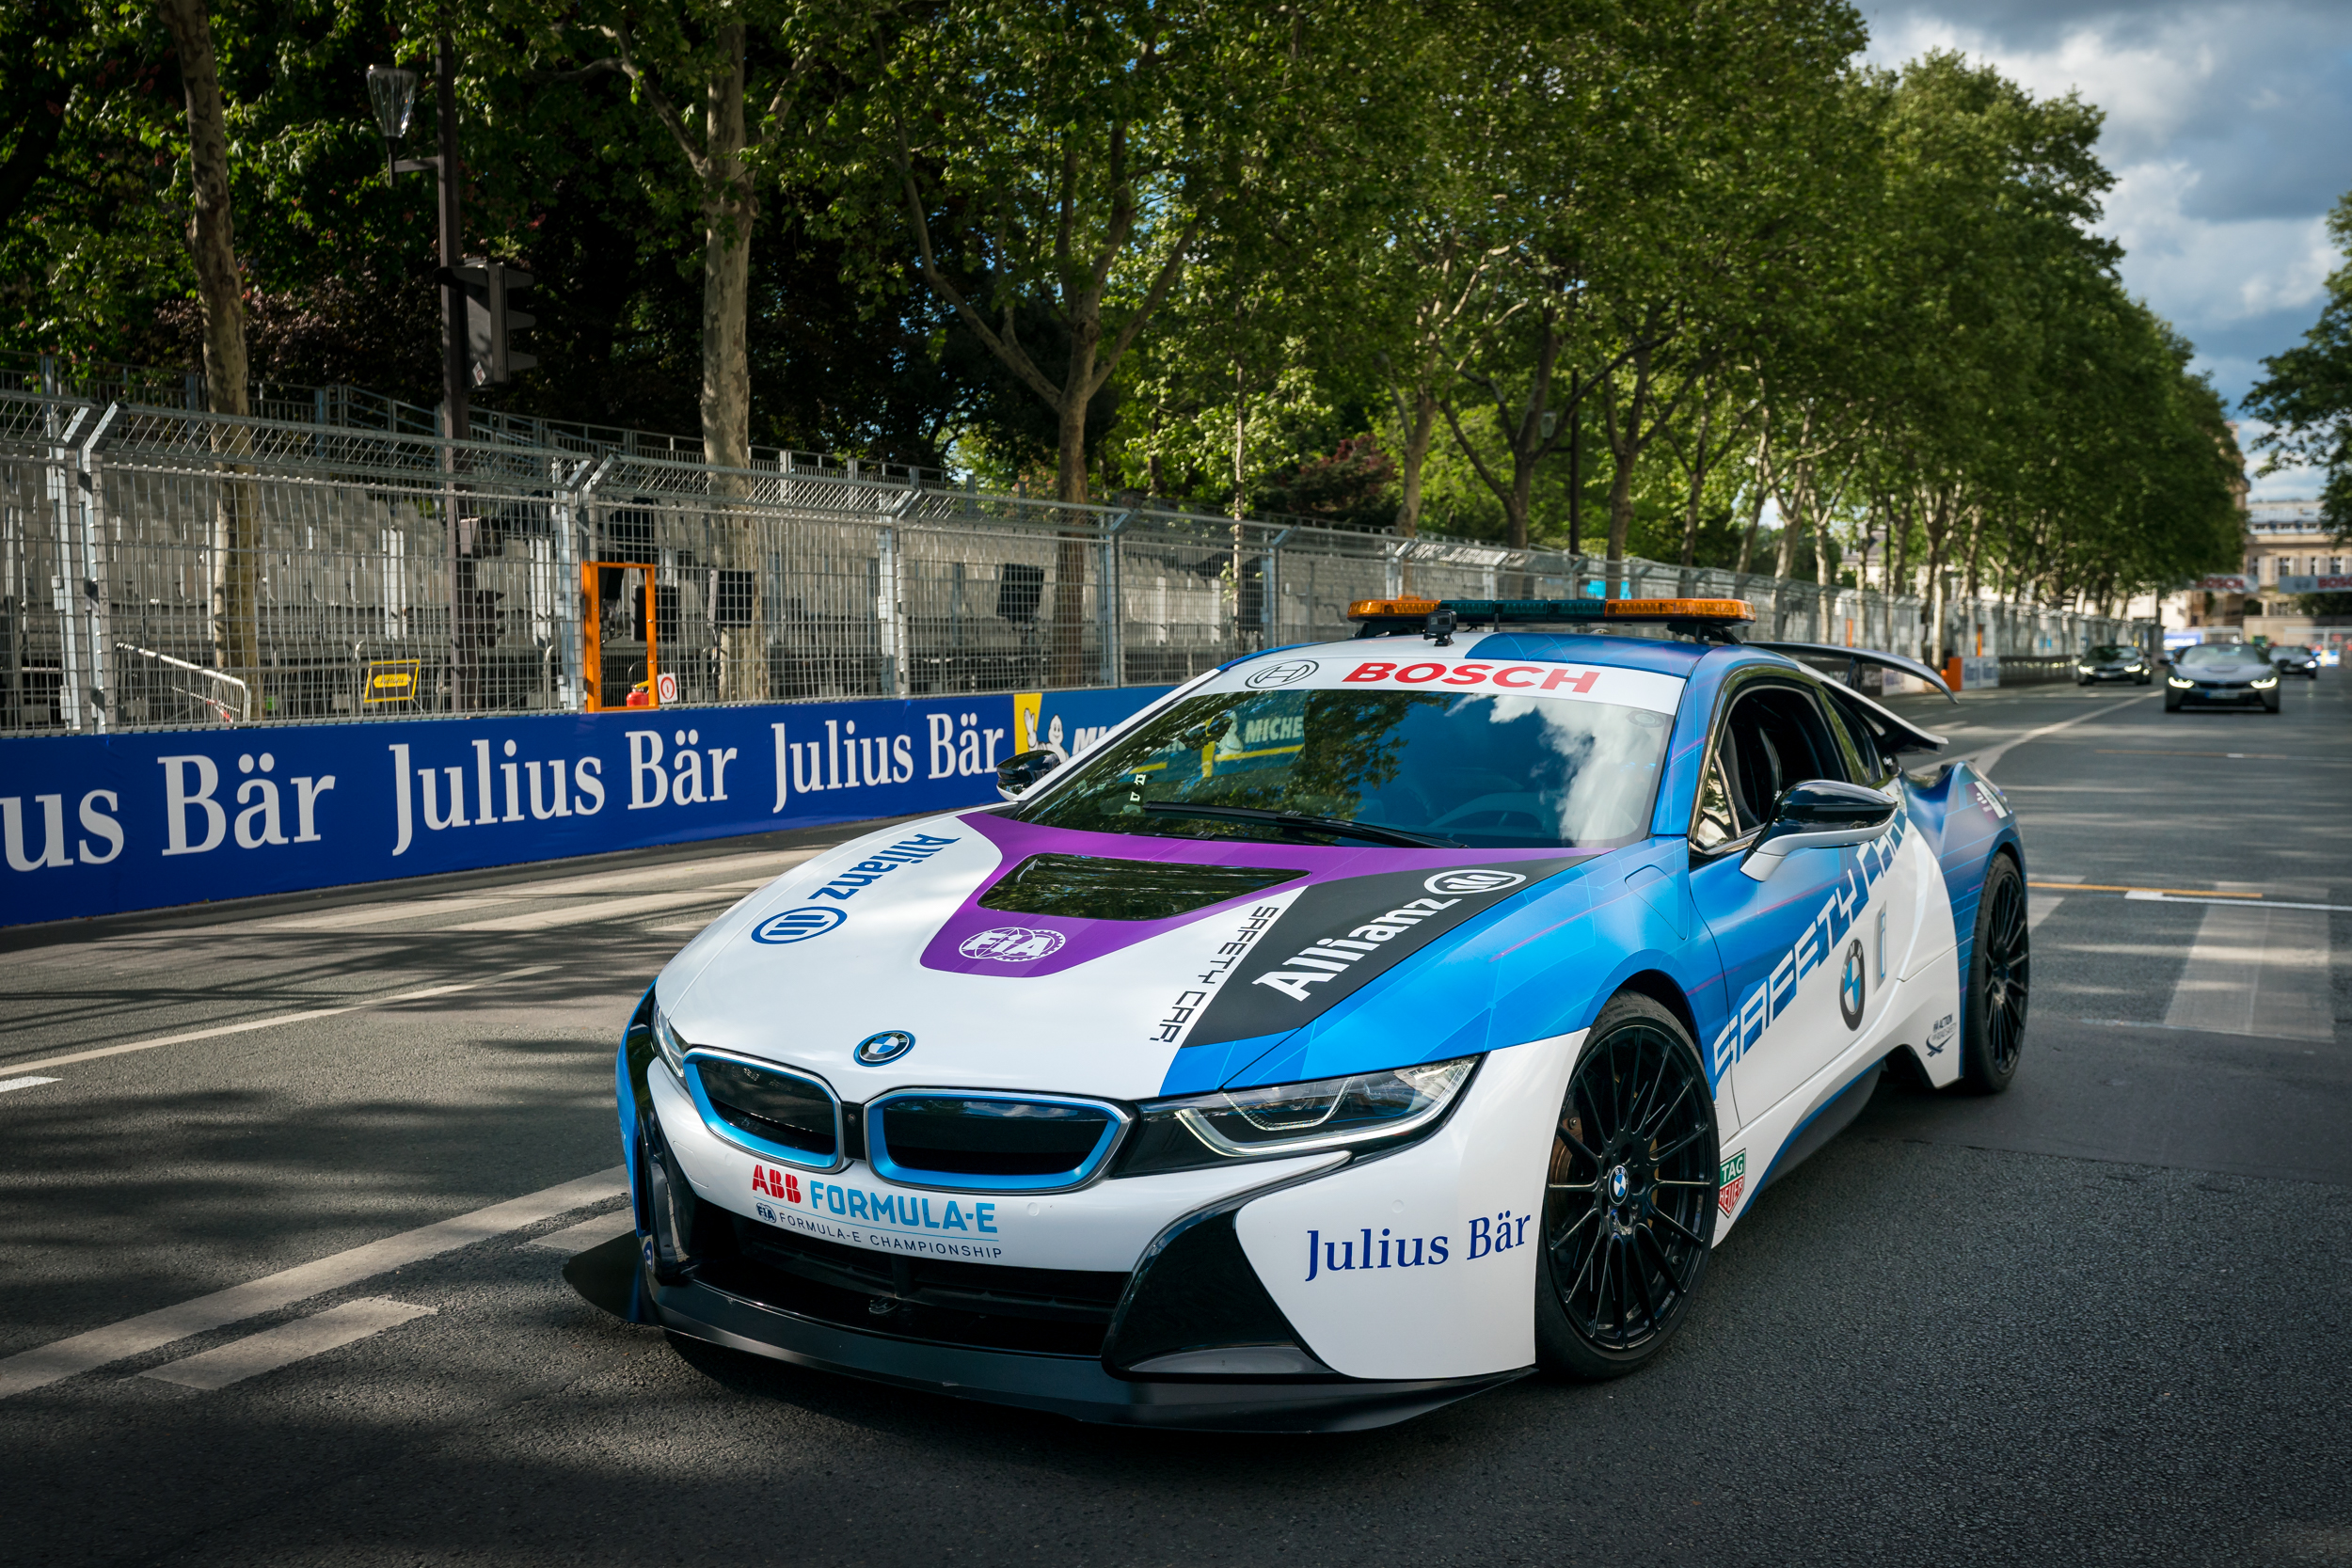 BMW i_Formula E Paris 2019_26&27-04-19_Florian Leger_SHARE & DARE_HD_N°-141.jpg